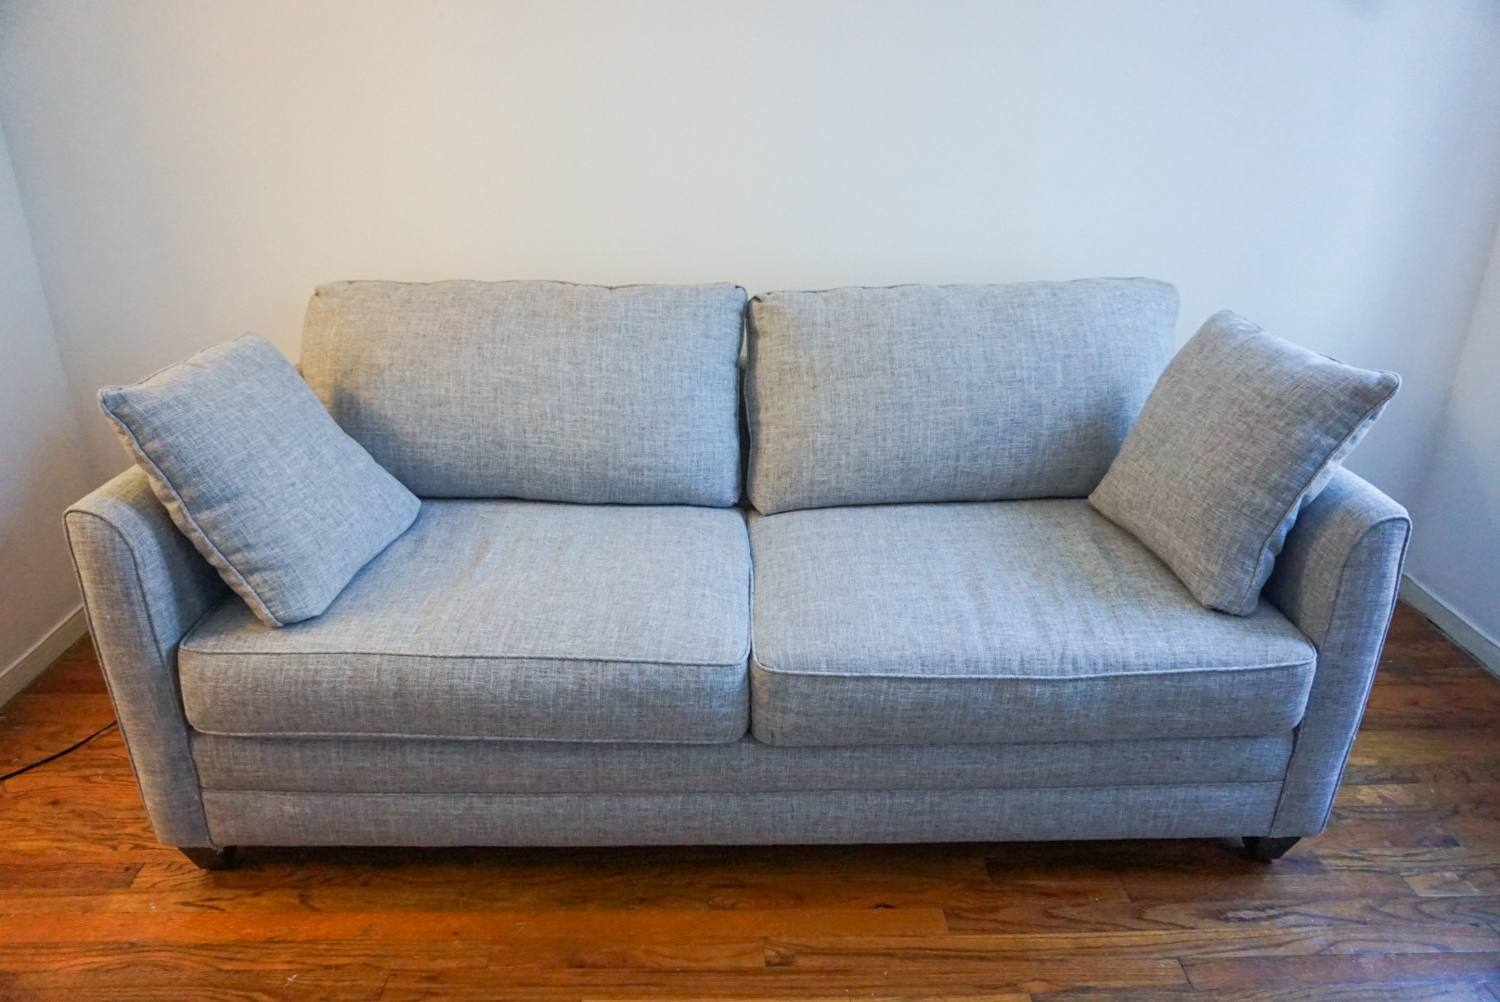 Groovy The 9 Best Sleeper Sofas Of 2019 Spiritservingveterans Wood Chair Design Ideas Spiritservingveteransorg